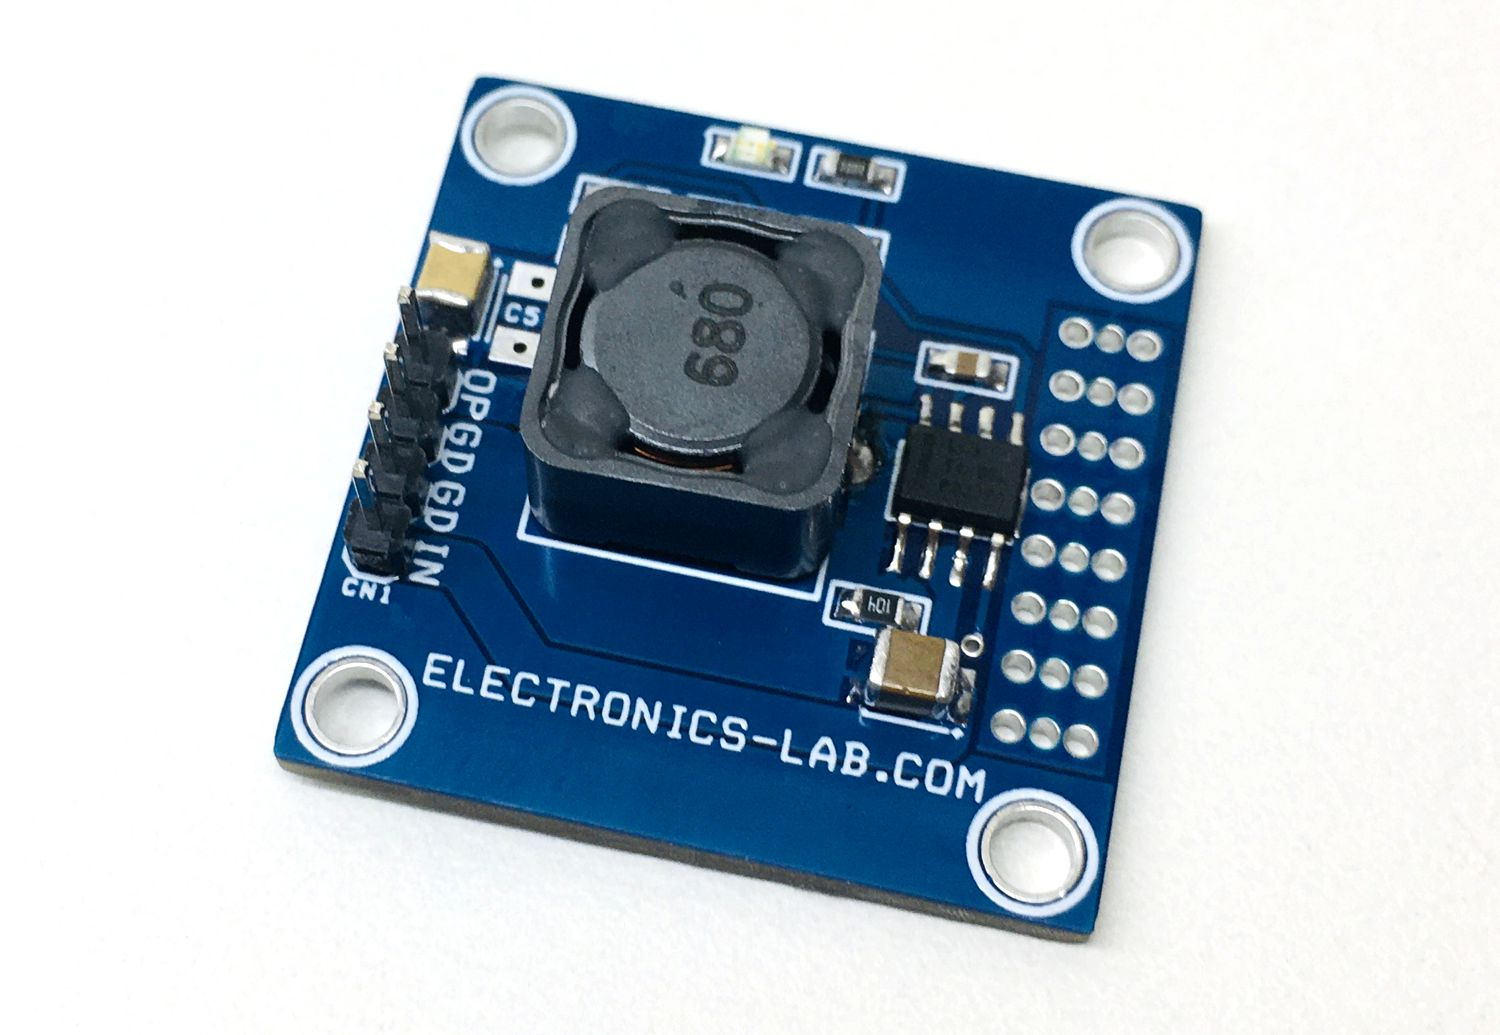 65V Input to 12Vdc Output – 1A synchronous buck DC/DC converter using LM5164